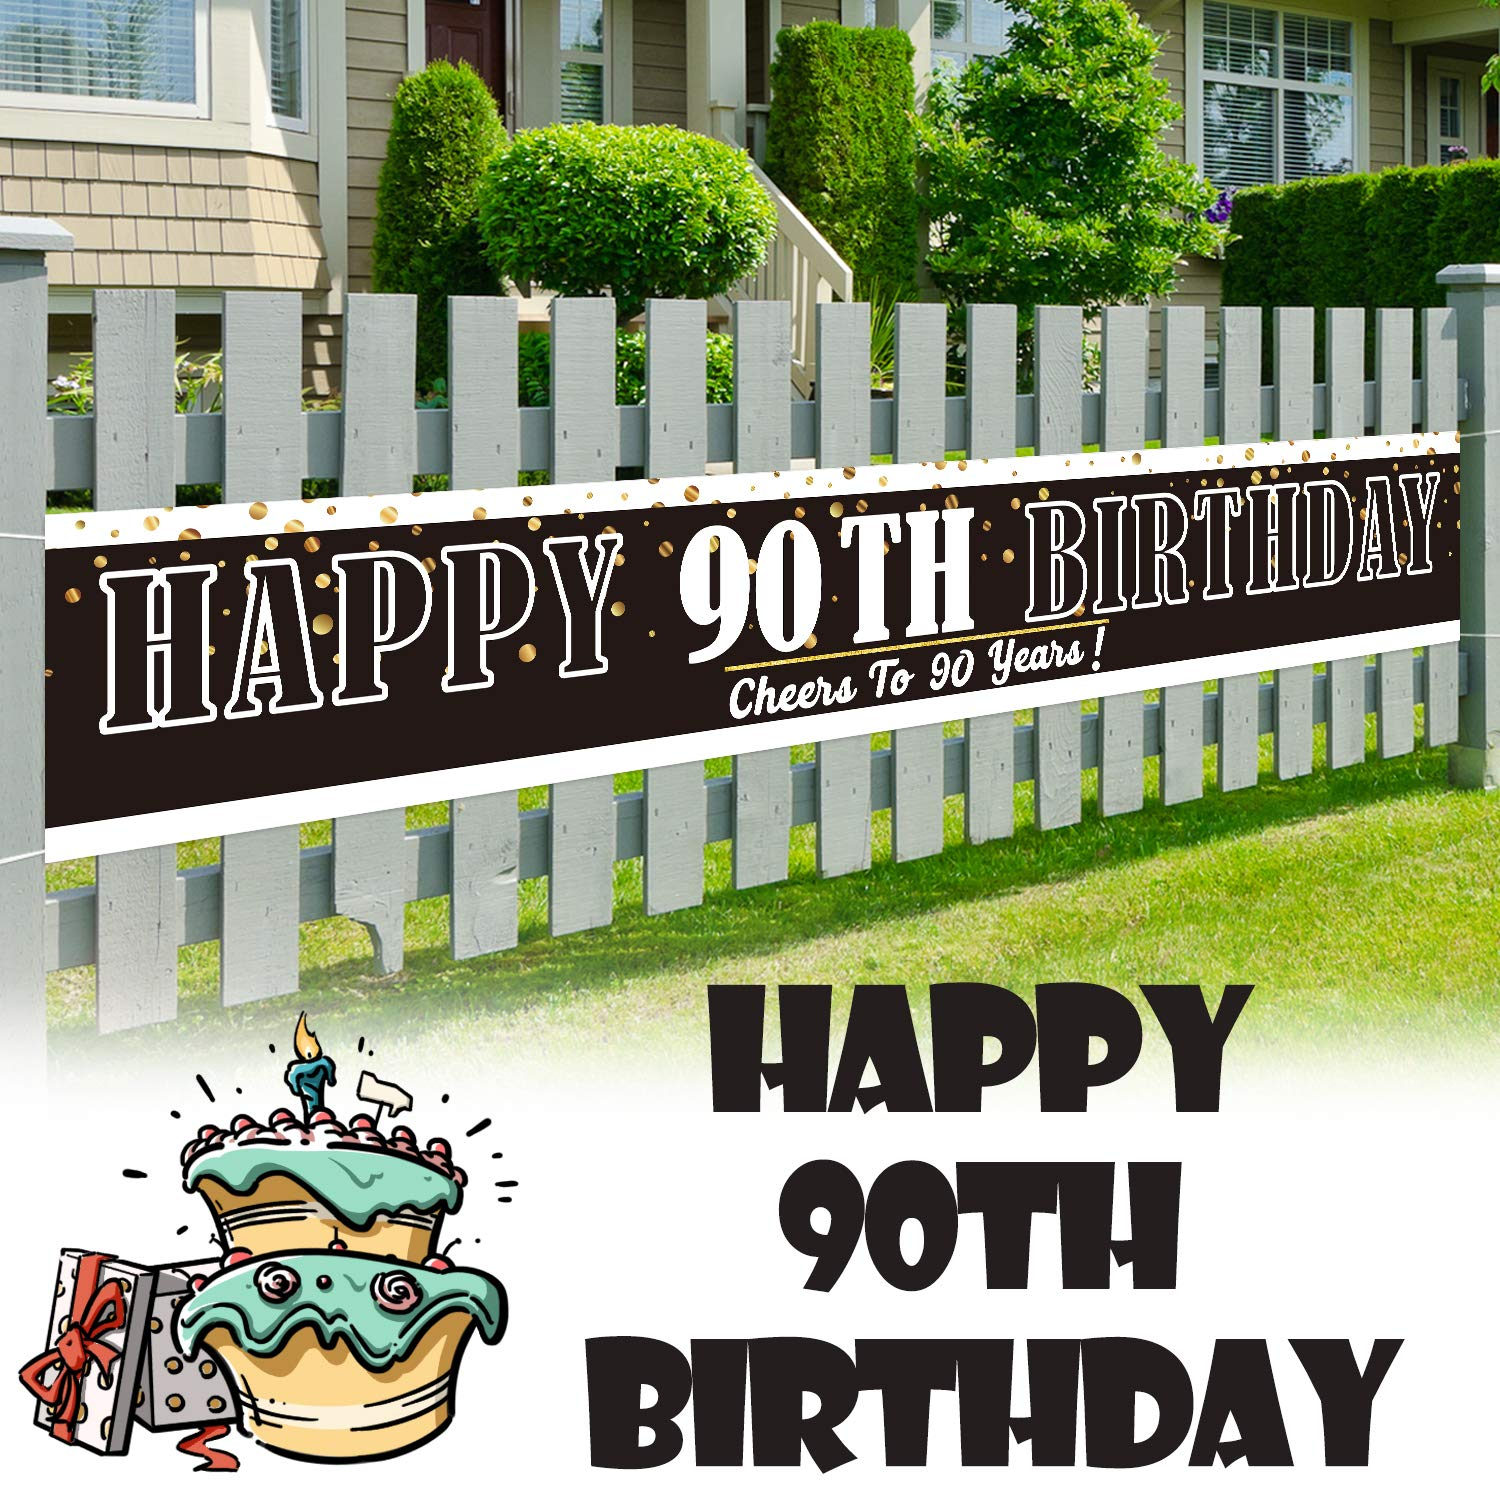 LINGPAR 9.8 x 1.6 ft Large Sign Happy 90th Birthday Banner - Cheers to 90 Years Old Decor